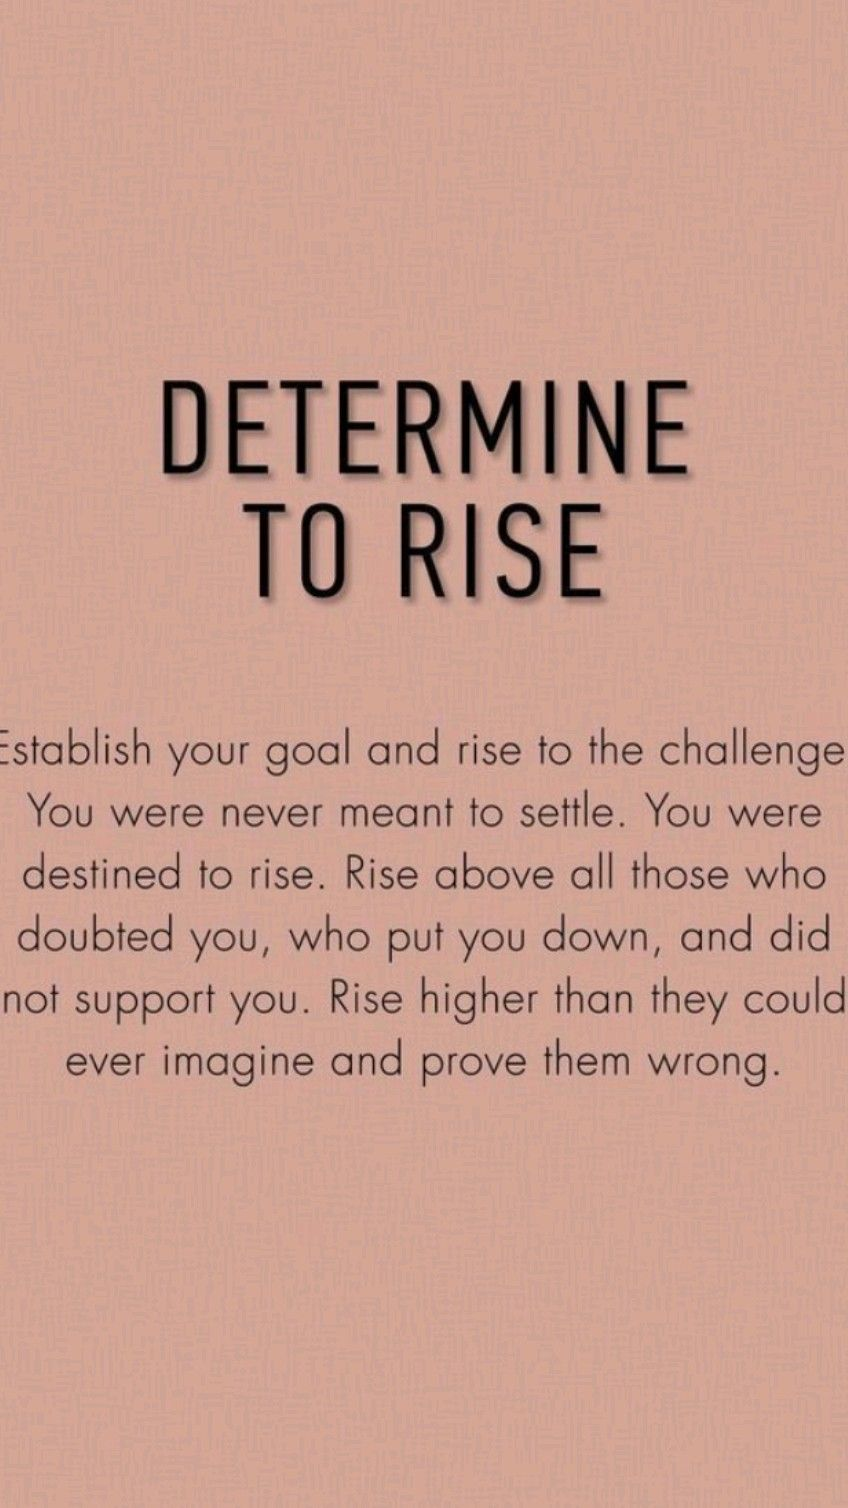 You may have fallen but now it's your time to RISE!